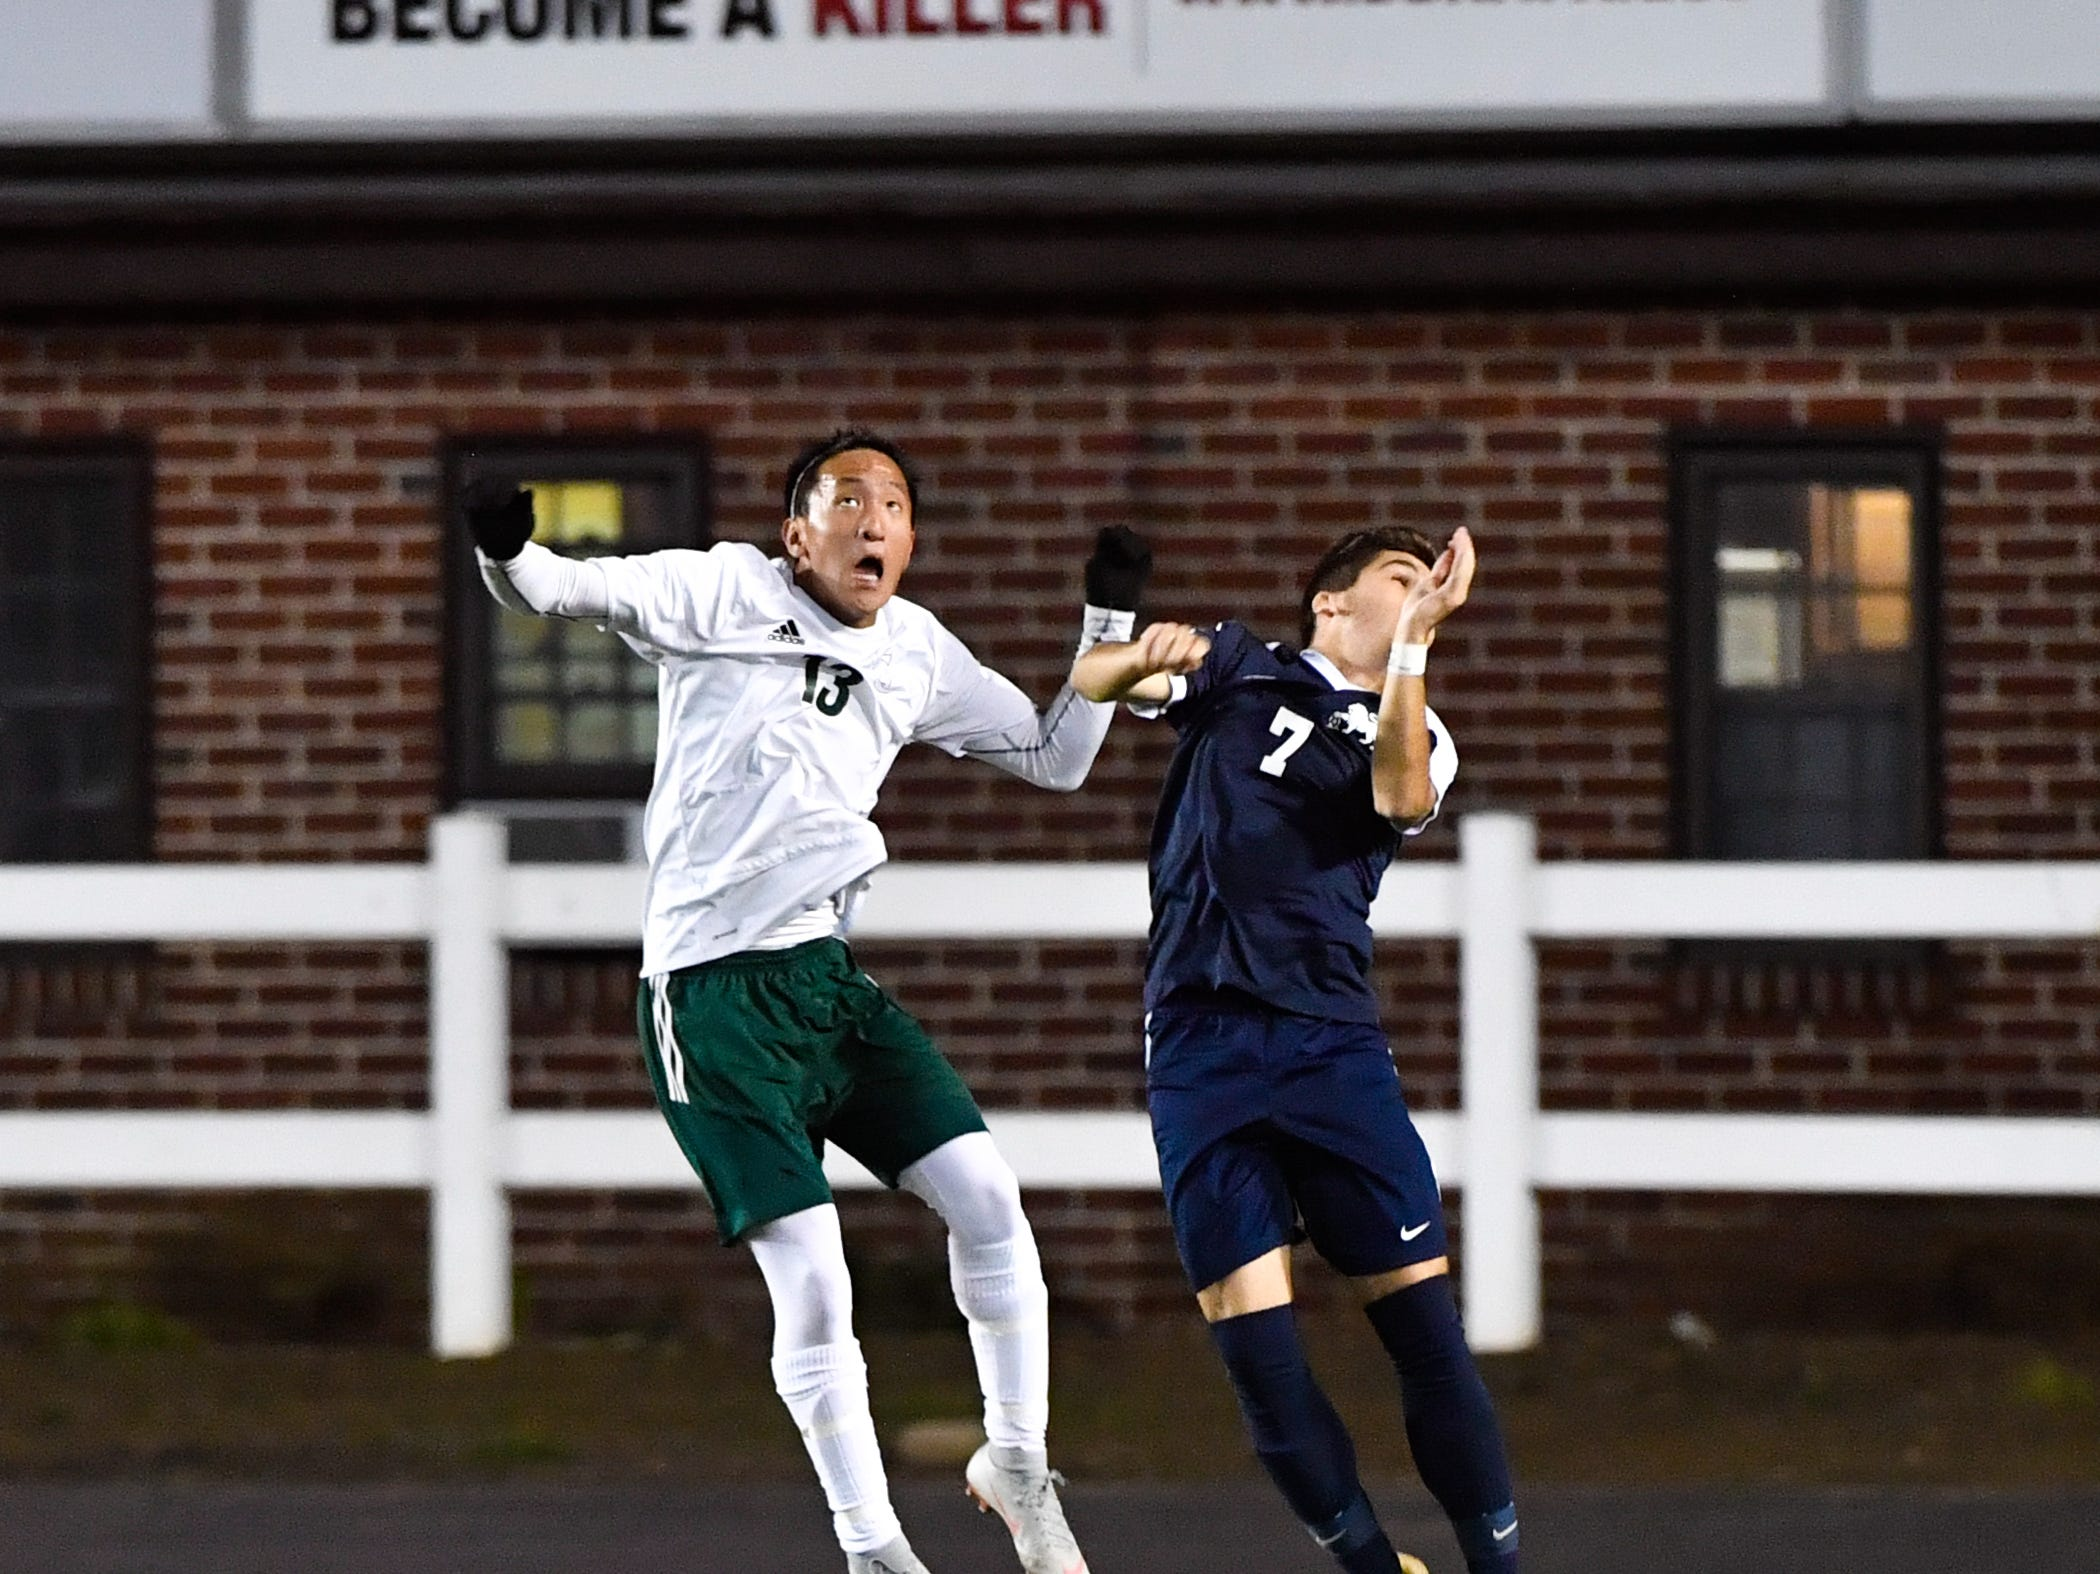 York Catholic's Sean Lavallee (13) and Camp Hill's Javier Gonzalez (7) go for the header during the District 3 Class 1A boys' soccer finals between York Catholic and Camp Hill at Hersheypark Stadium, October 31, 2018. The Lions beat the Fighting Irish 2-0.